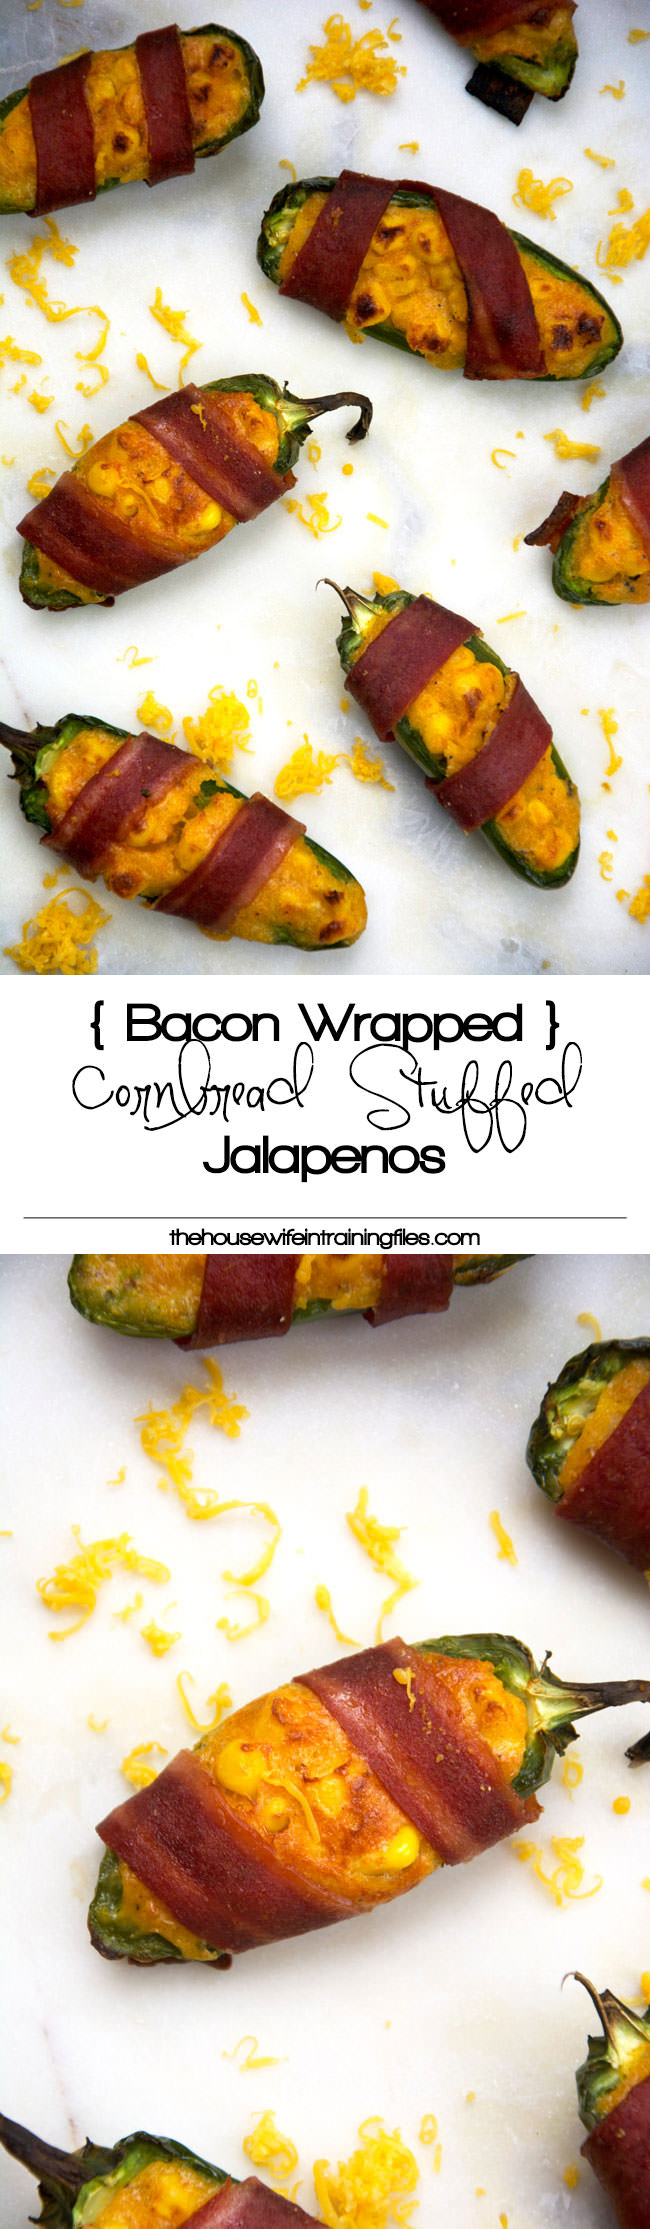 Cheesy Corn Stuffed Jalapenos will help you get out of that game day grub rut! Cheesy cornbread is stuffed into jalapenos, wrapped in turkey bacon then baked! Surprisingly healthy and completely irresistible!